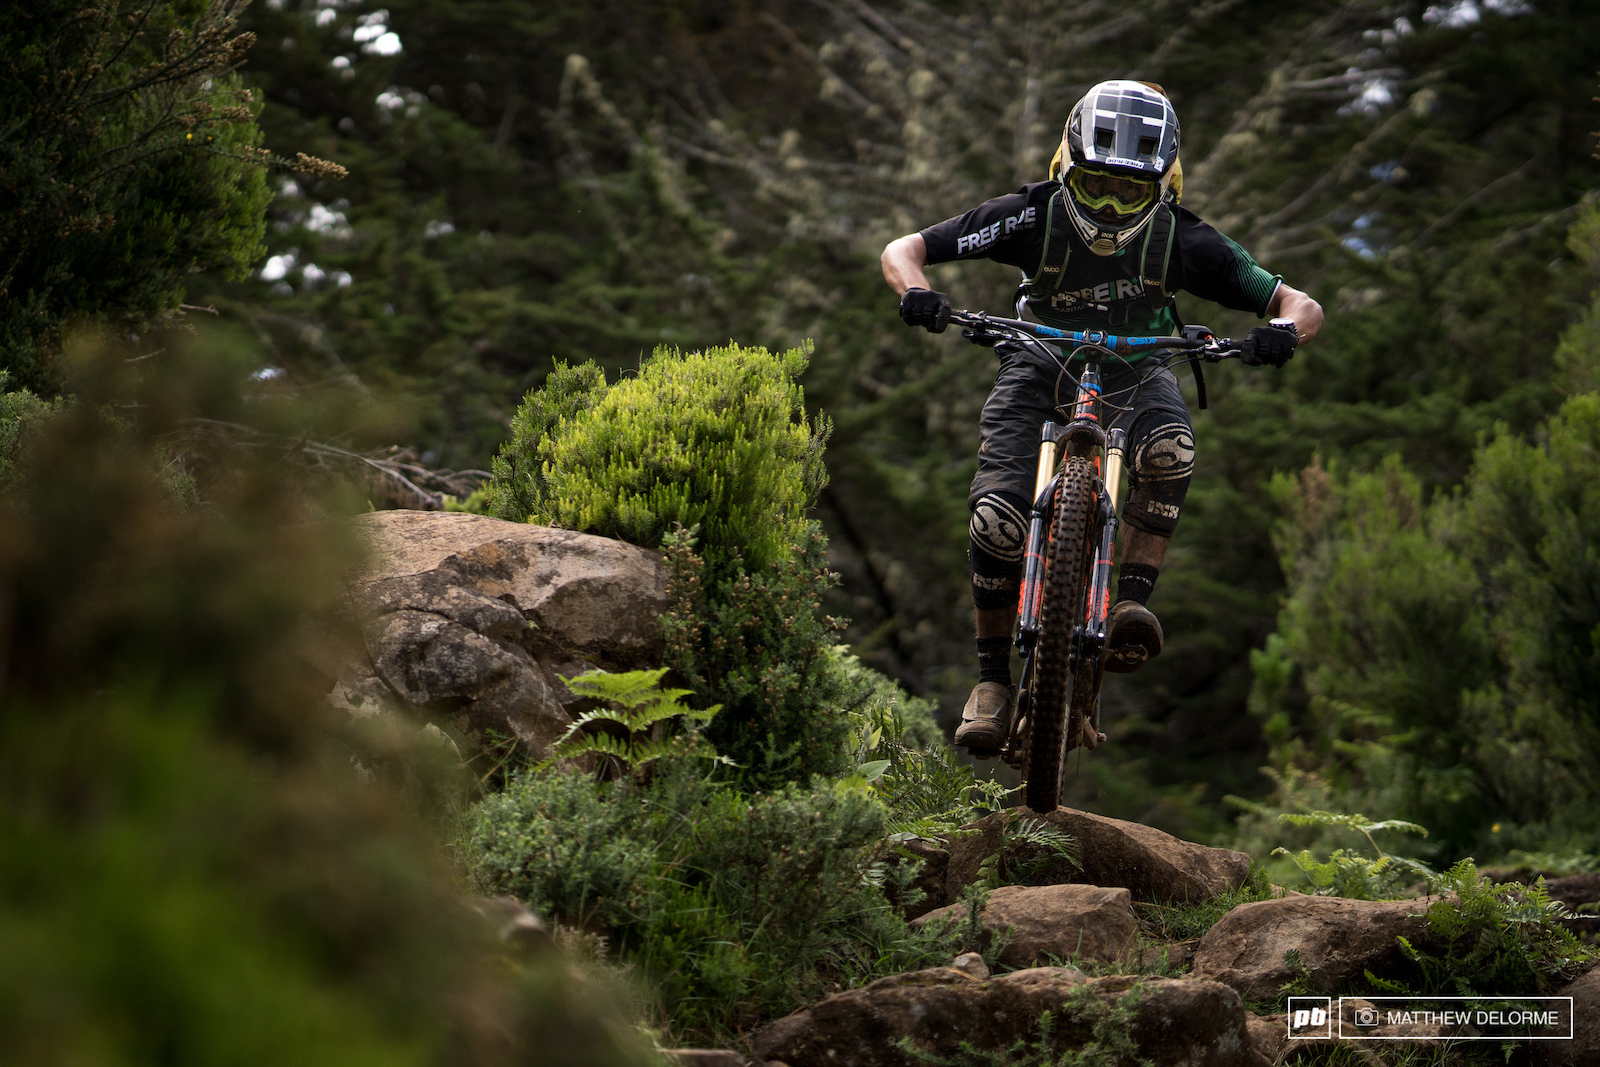 John From Freeride Madeira is the man with the plan. He shows us how it s done.